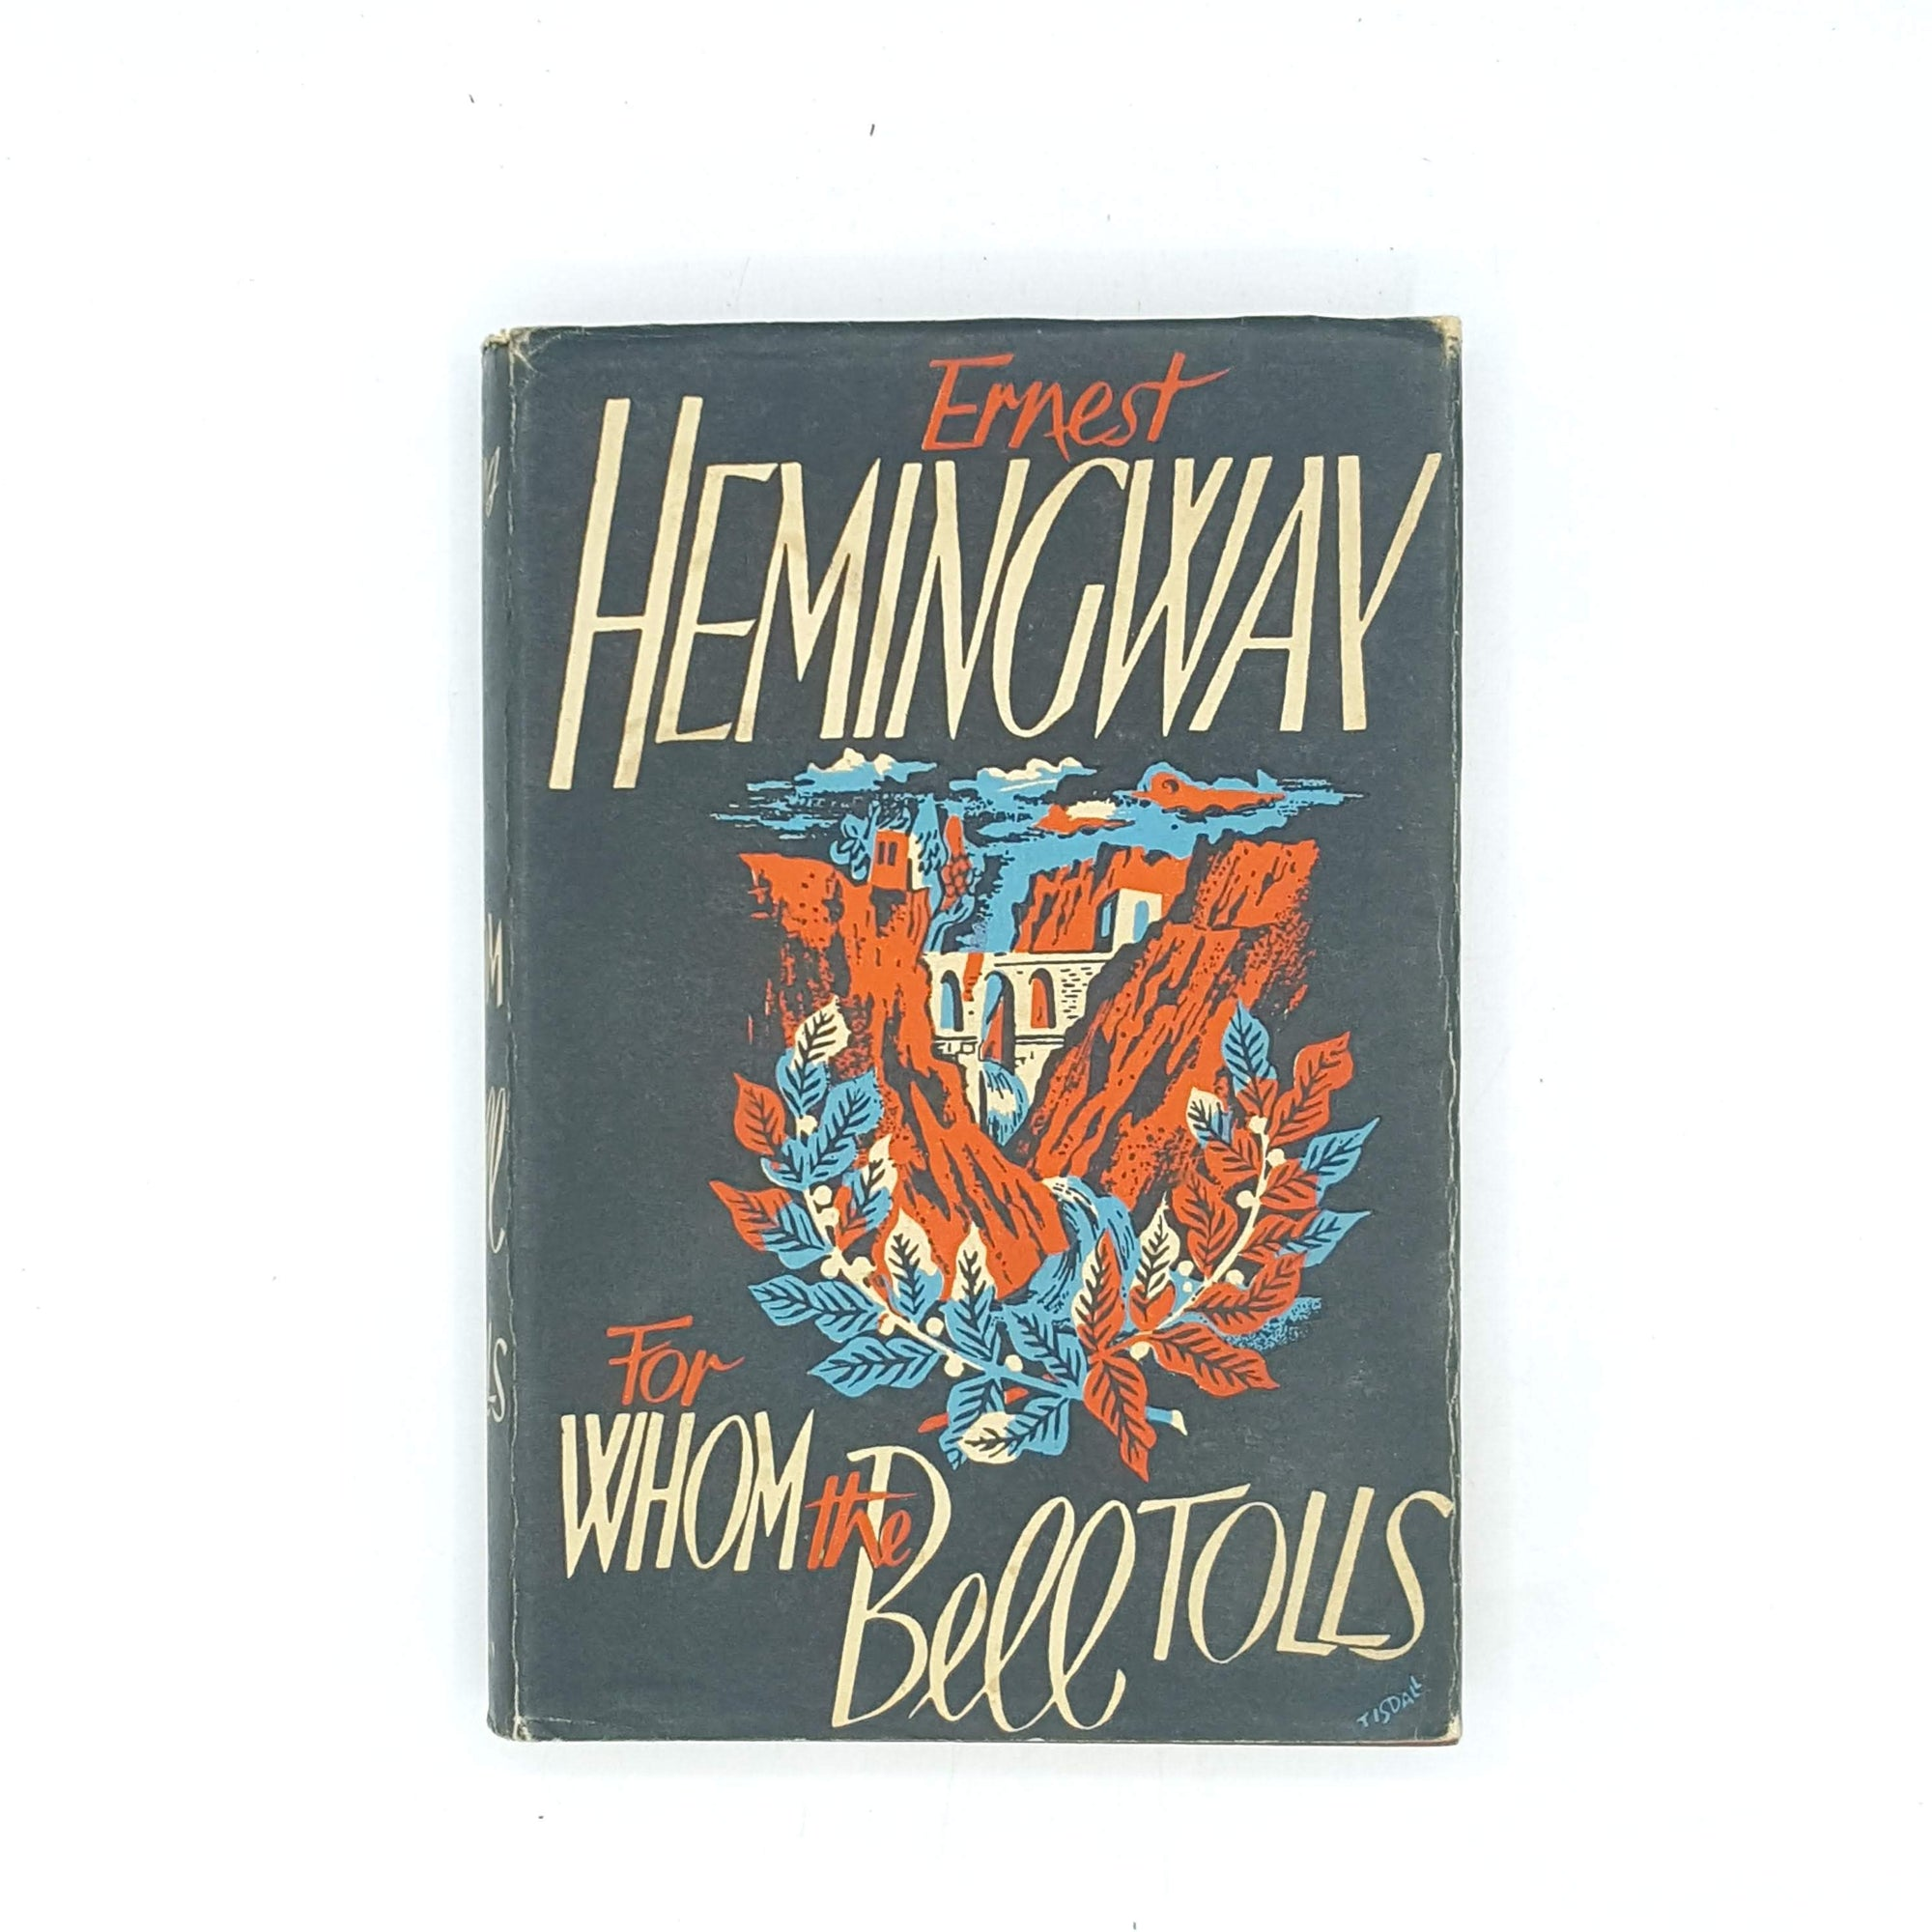 Ernest Hemingway's For Whom the Bell Tolls 1954